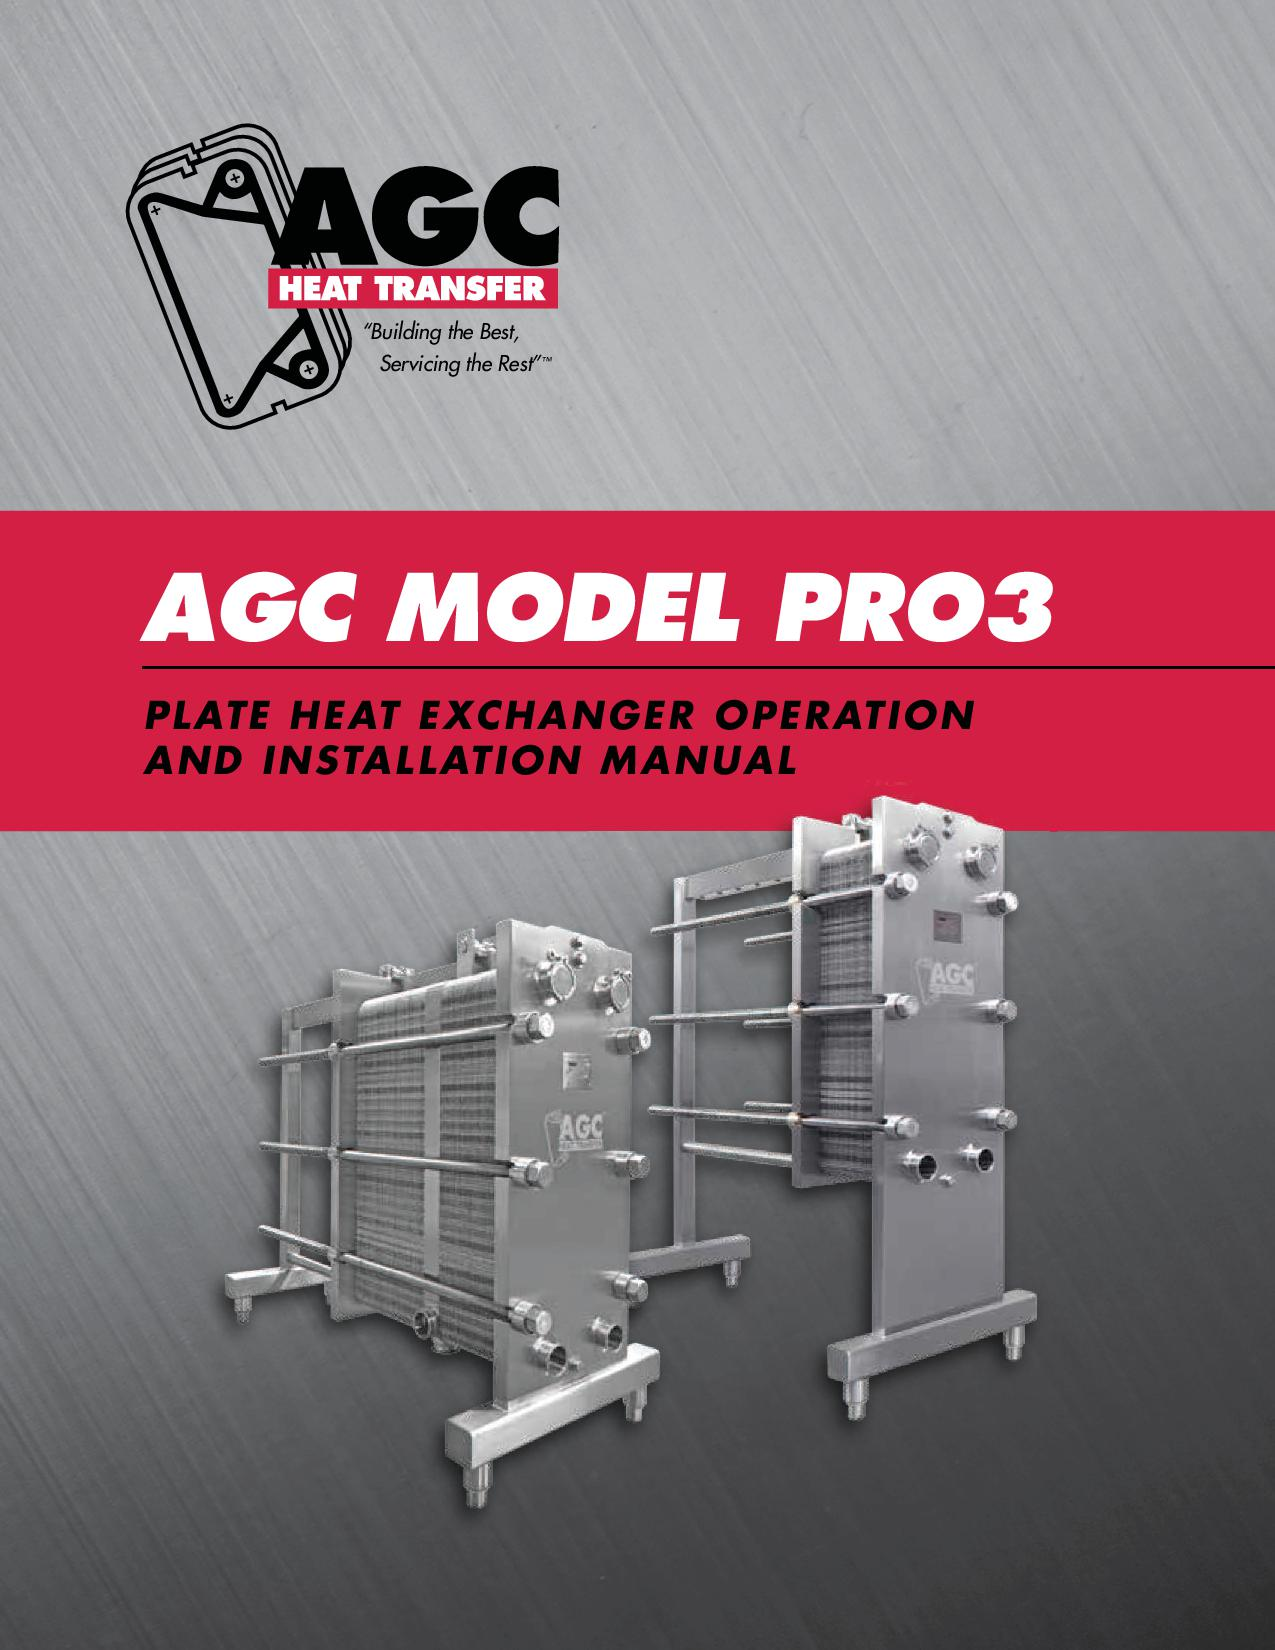 AGC Operating Manual Pro3